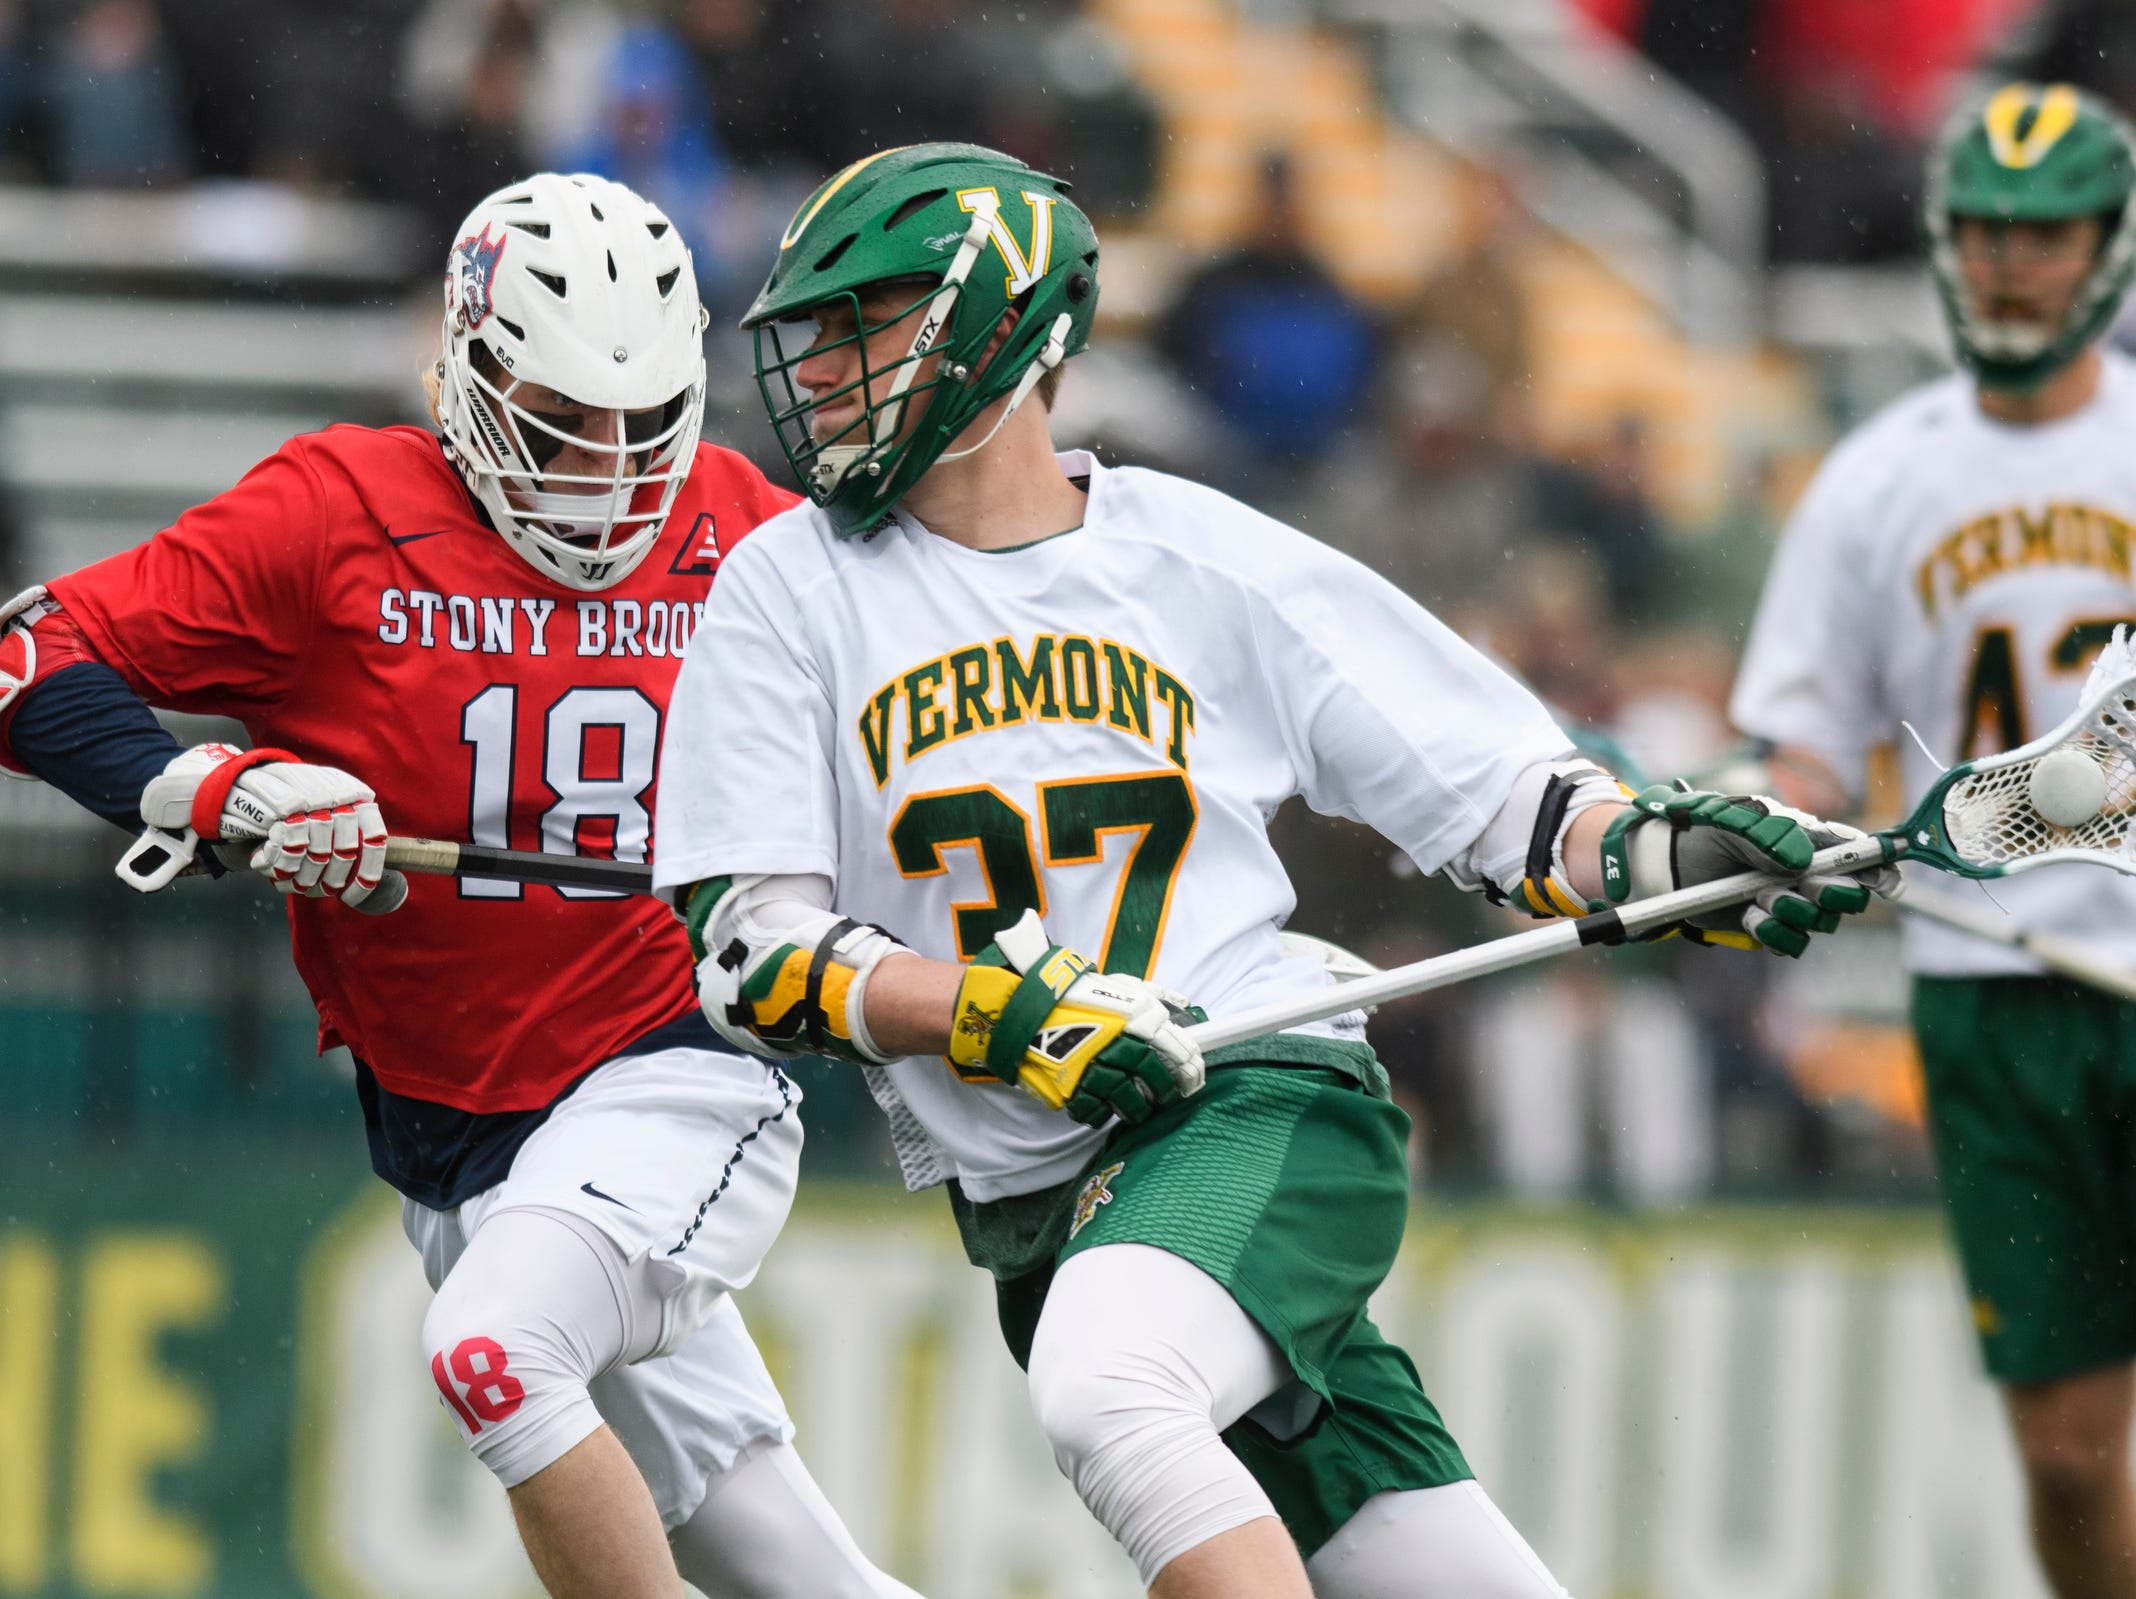 Vermont's Rob Hudson (37) looks to take a shot during the men's lacrosse game between the Stony Brook Sea Wolves and the Vermont Catamounts at Virtue Field on Saturday afternoon April 20, 2019 in Burlington, Vermont.